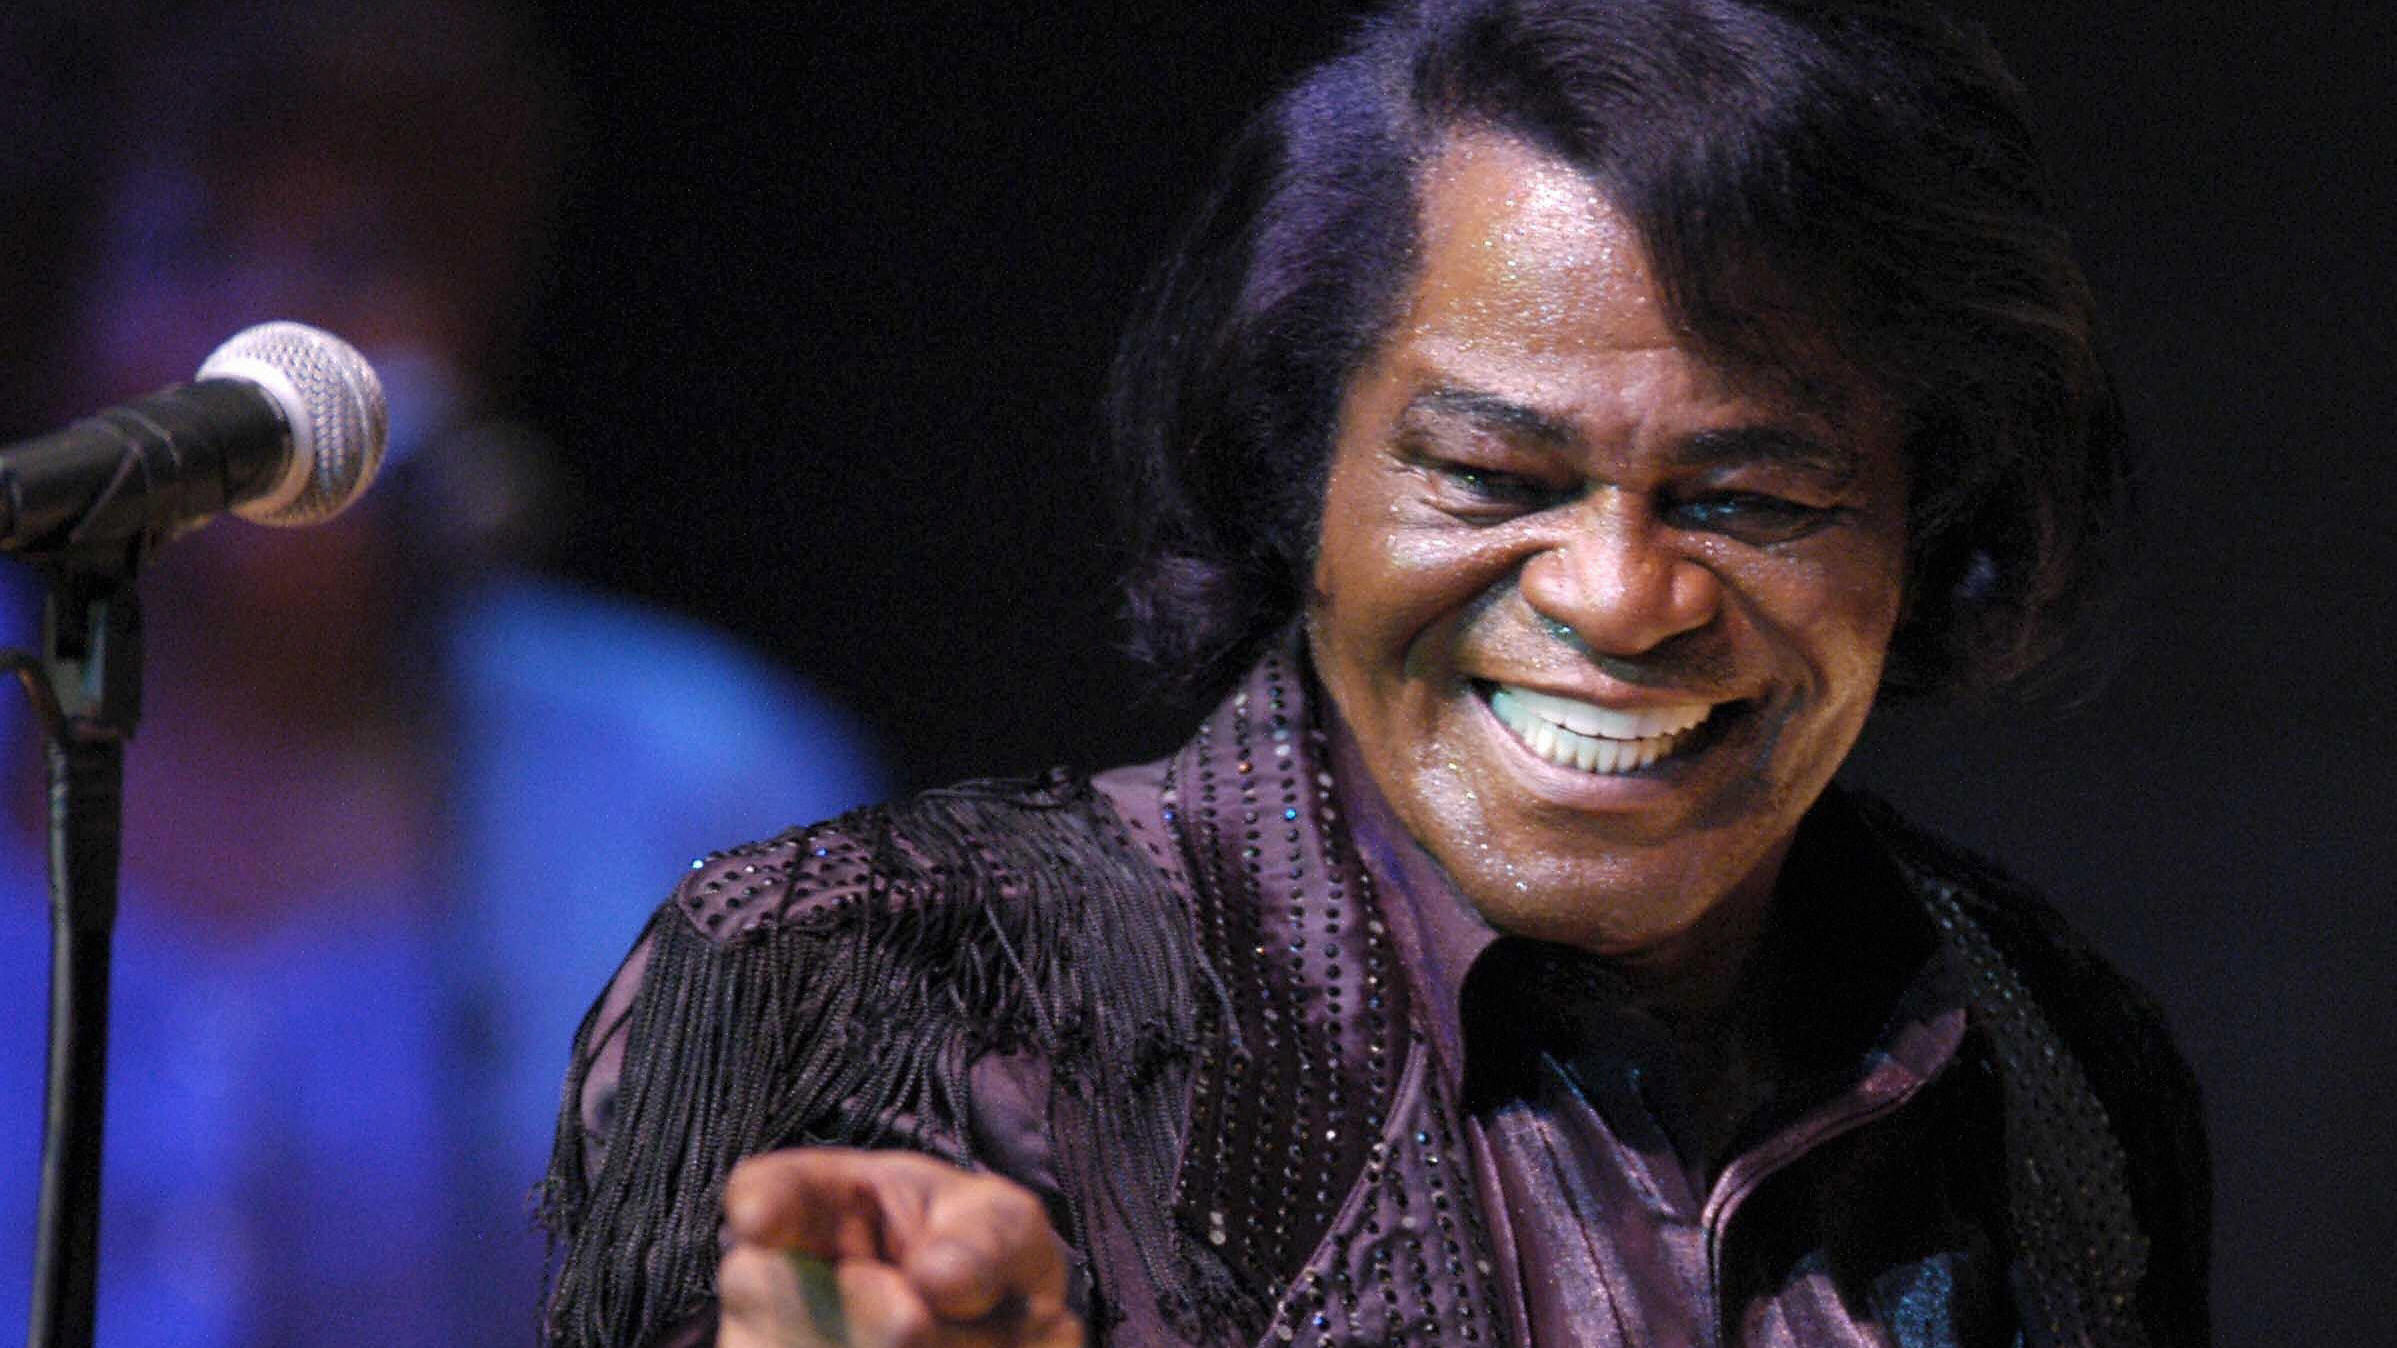 james brown фильм